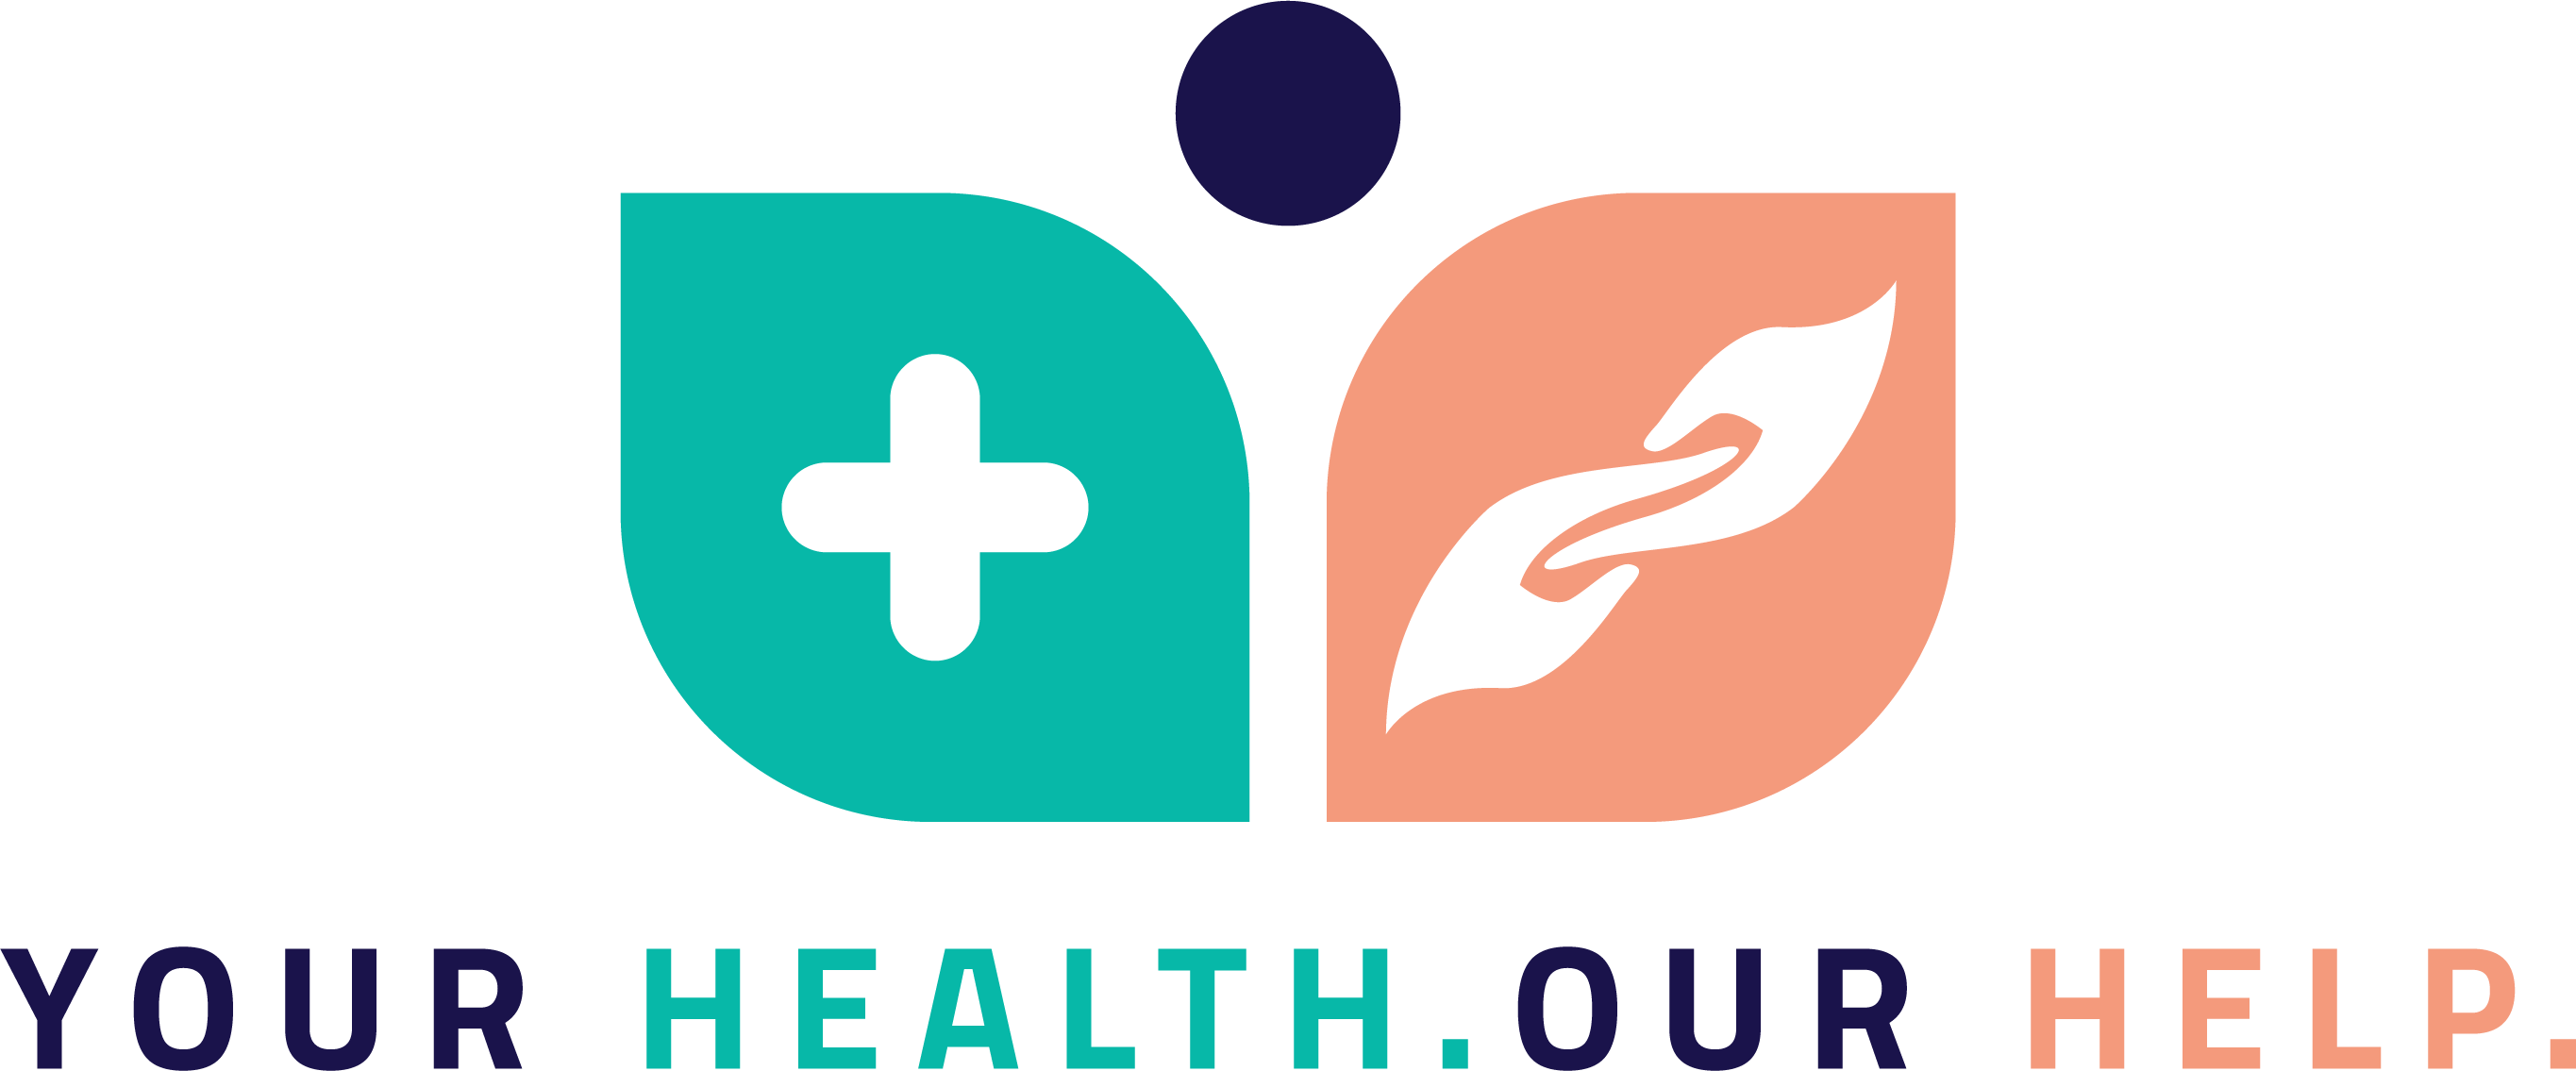 YHOH - Your Health Our Help logo